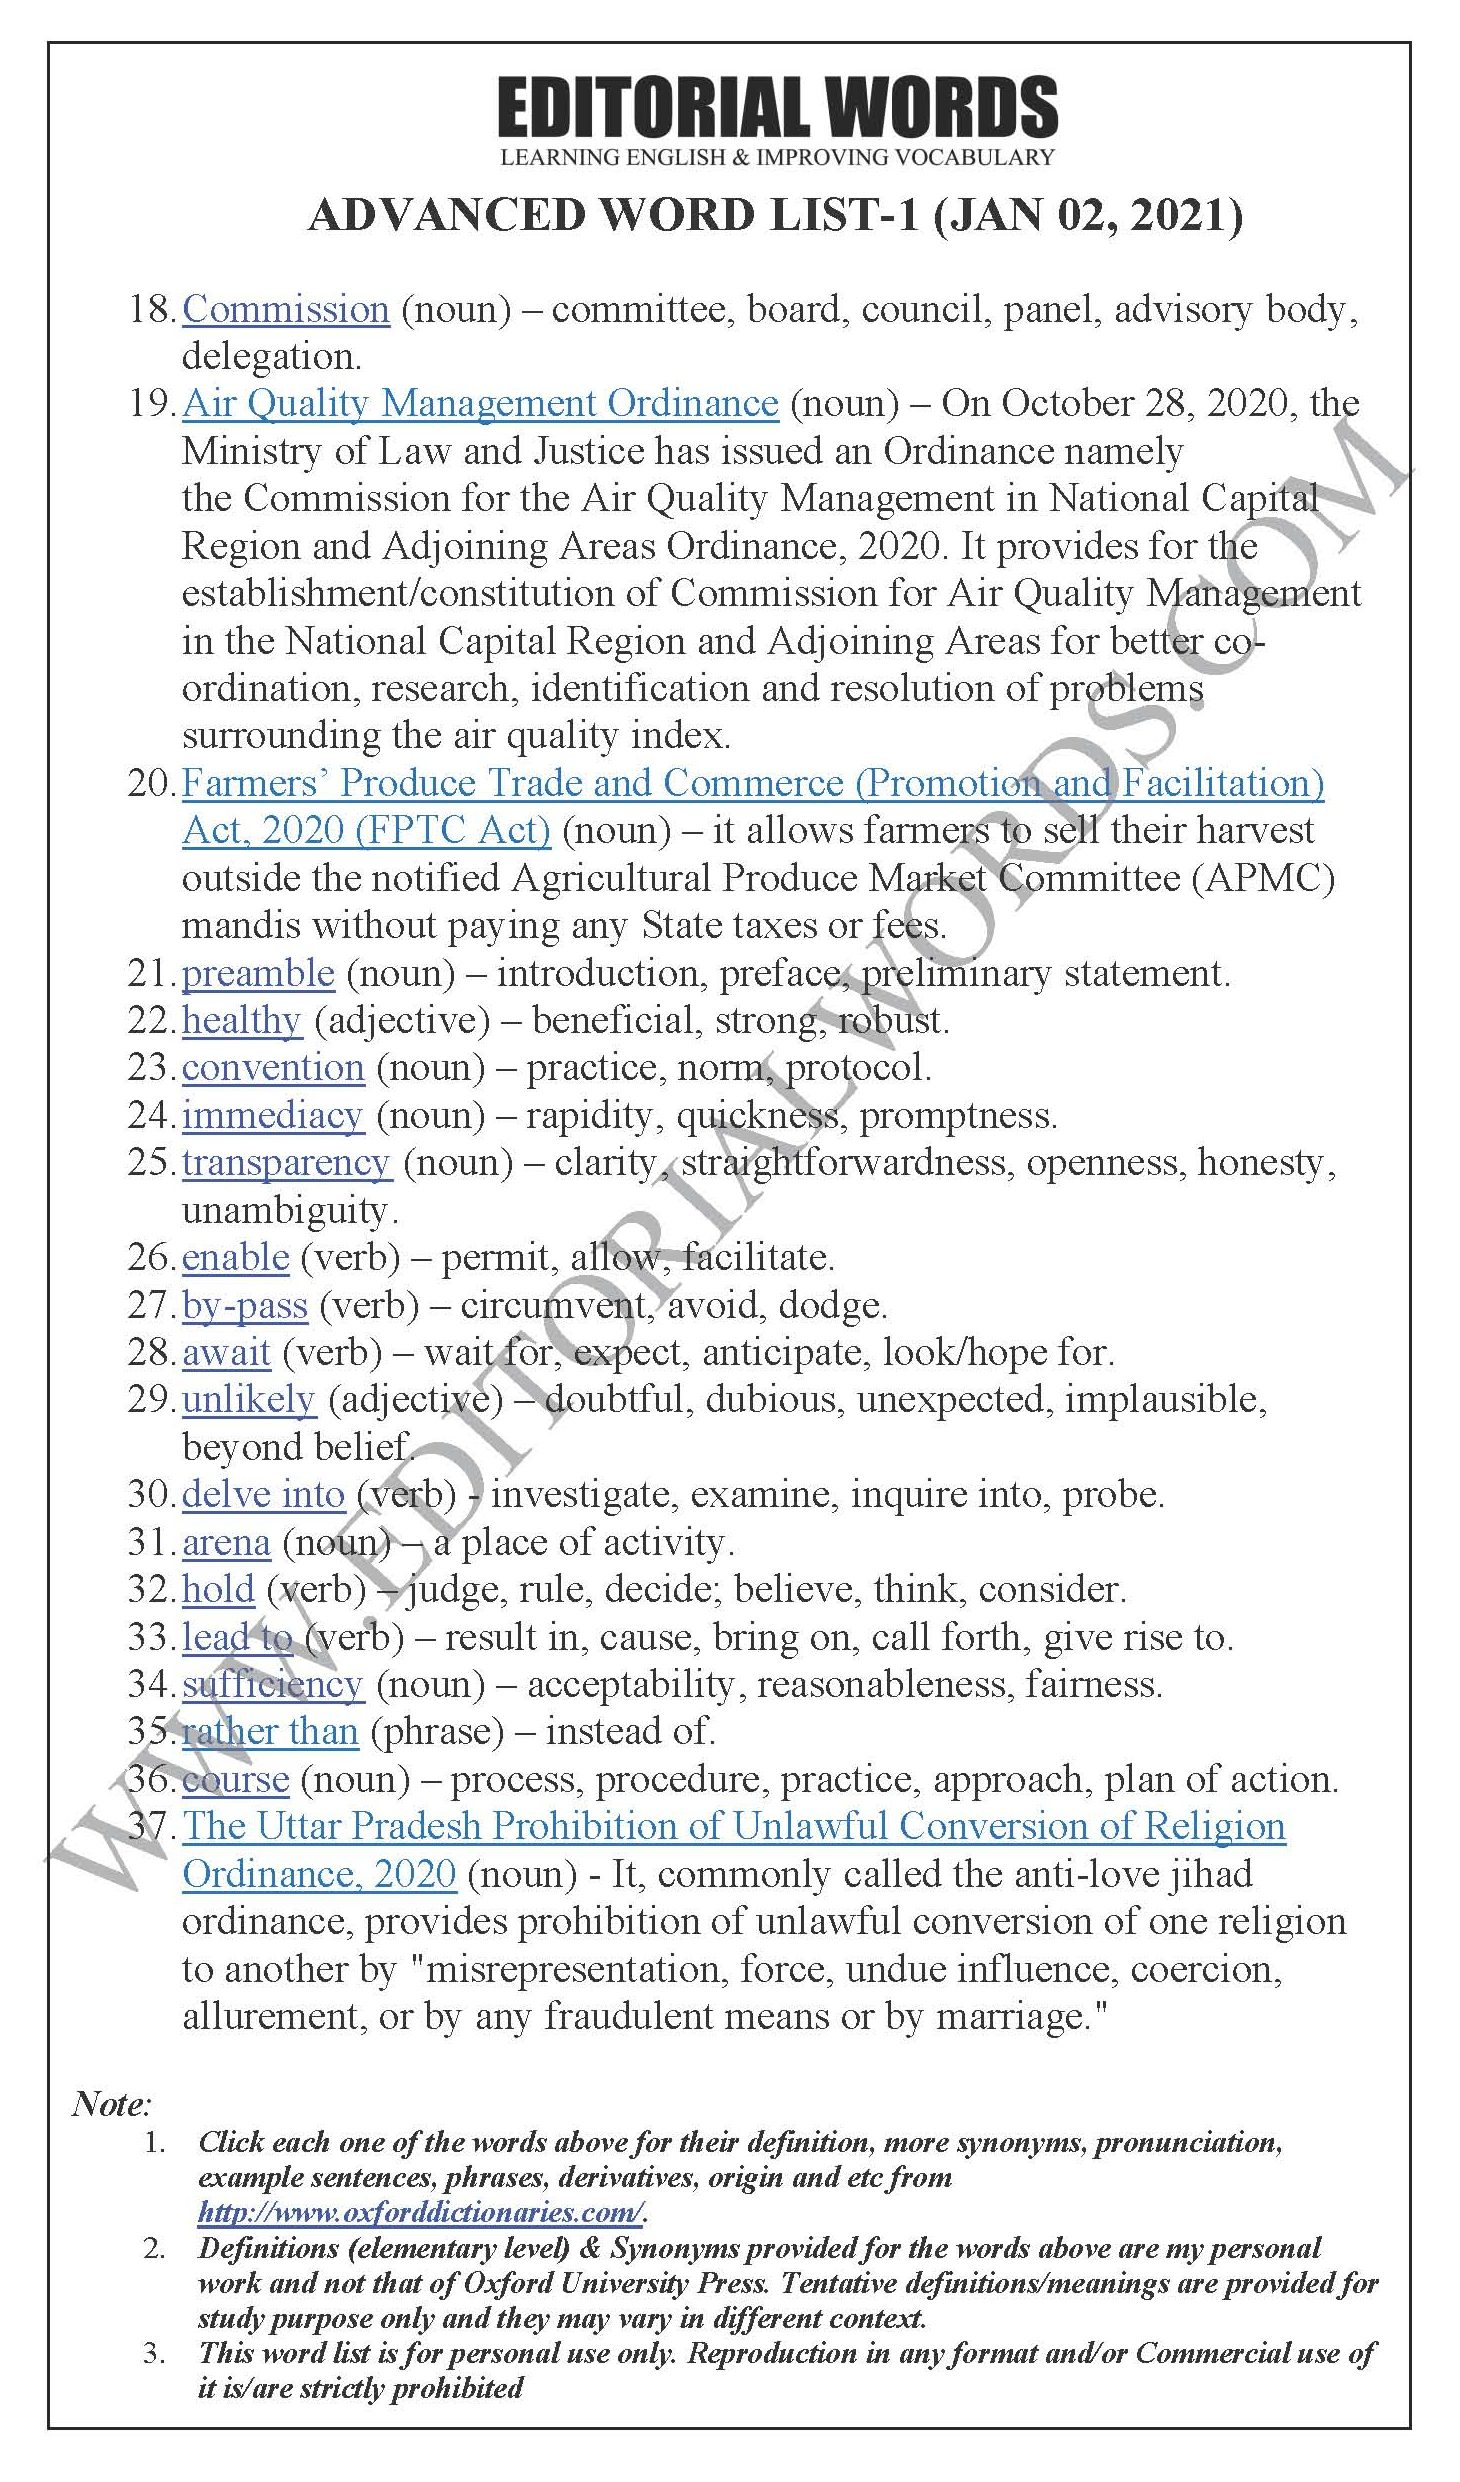 The Hindu Lead Article (An ill-conceived, overbroad and vague ordinance) – Jan 02, 2021